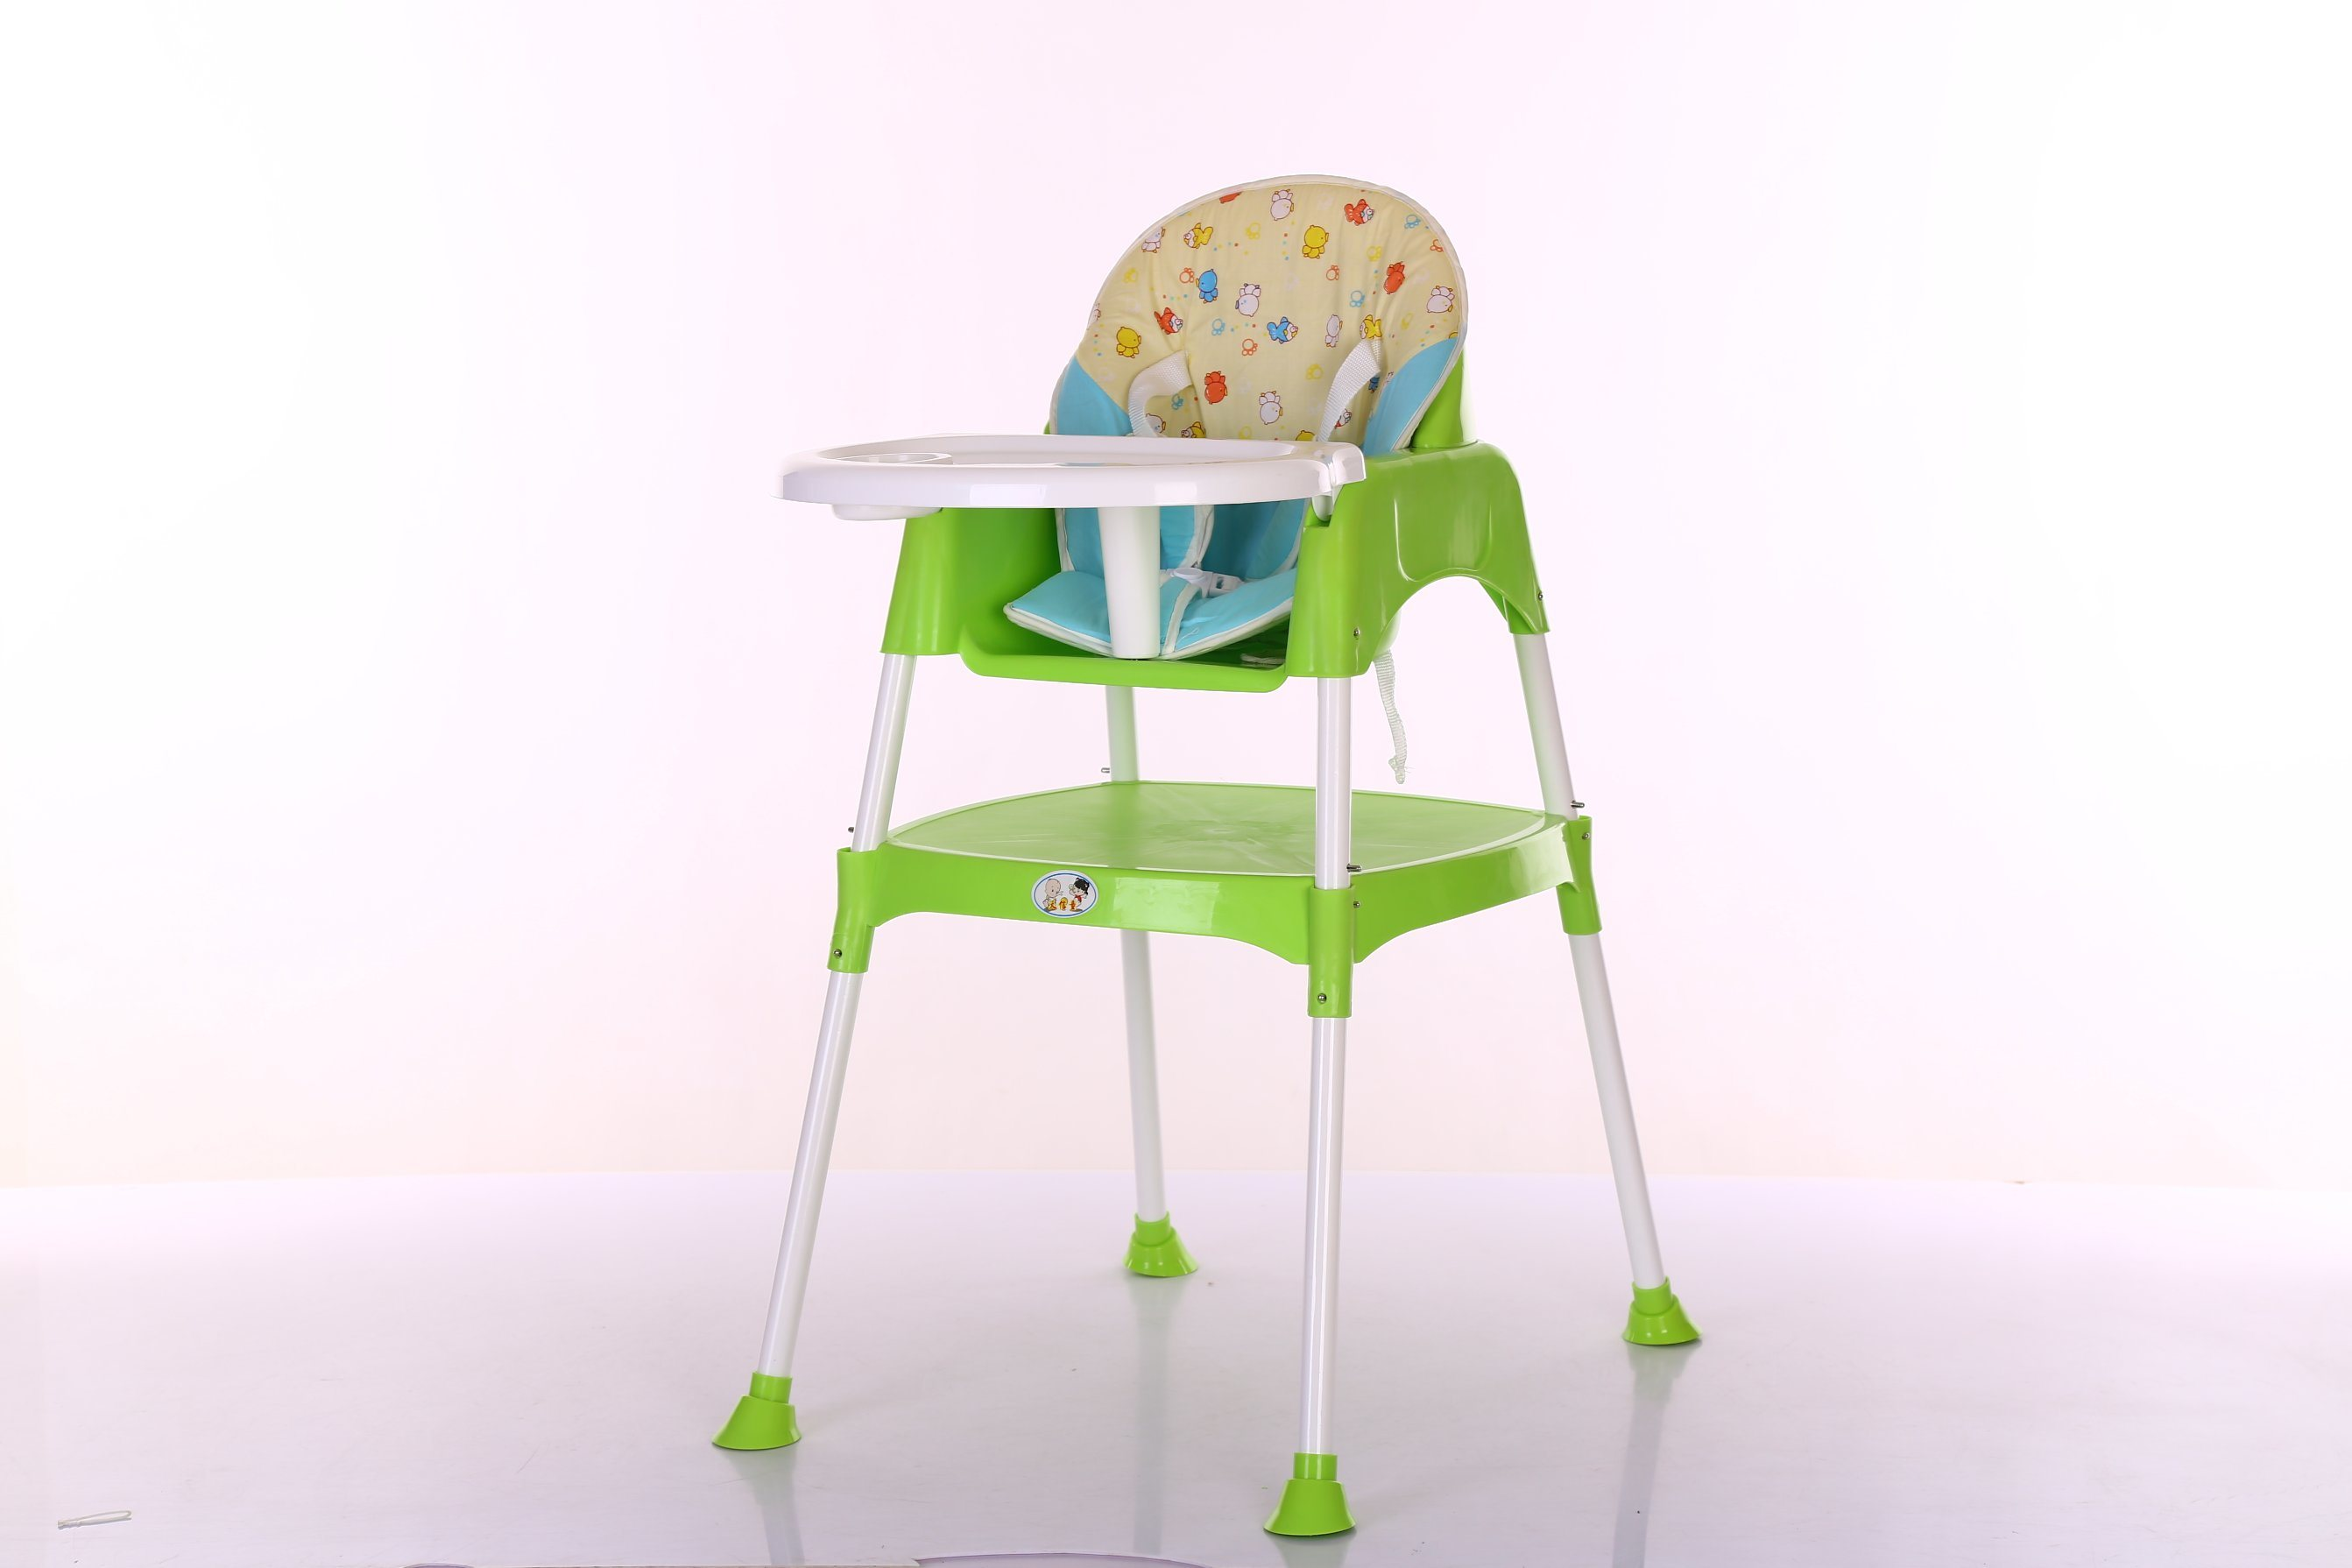 China Whole Baby Dining Chair Sitting Functional Table Desk High